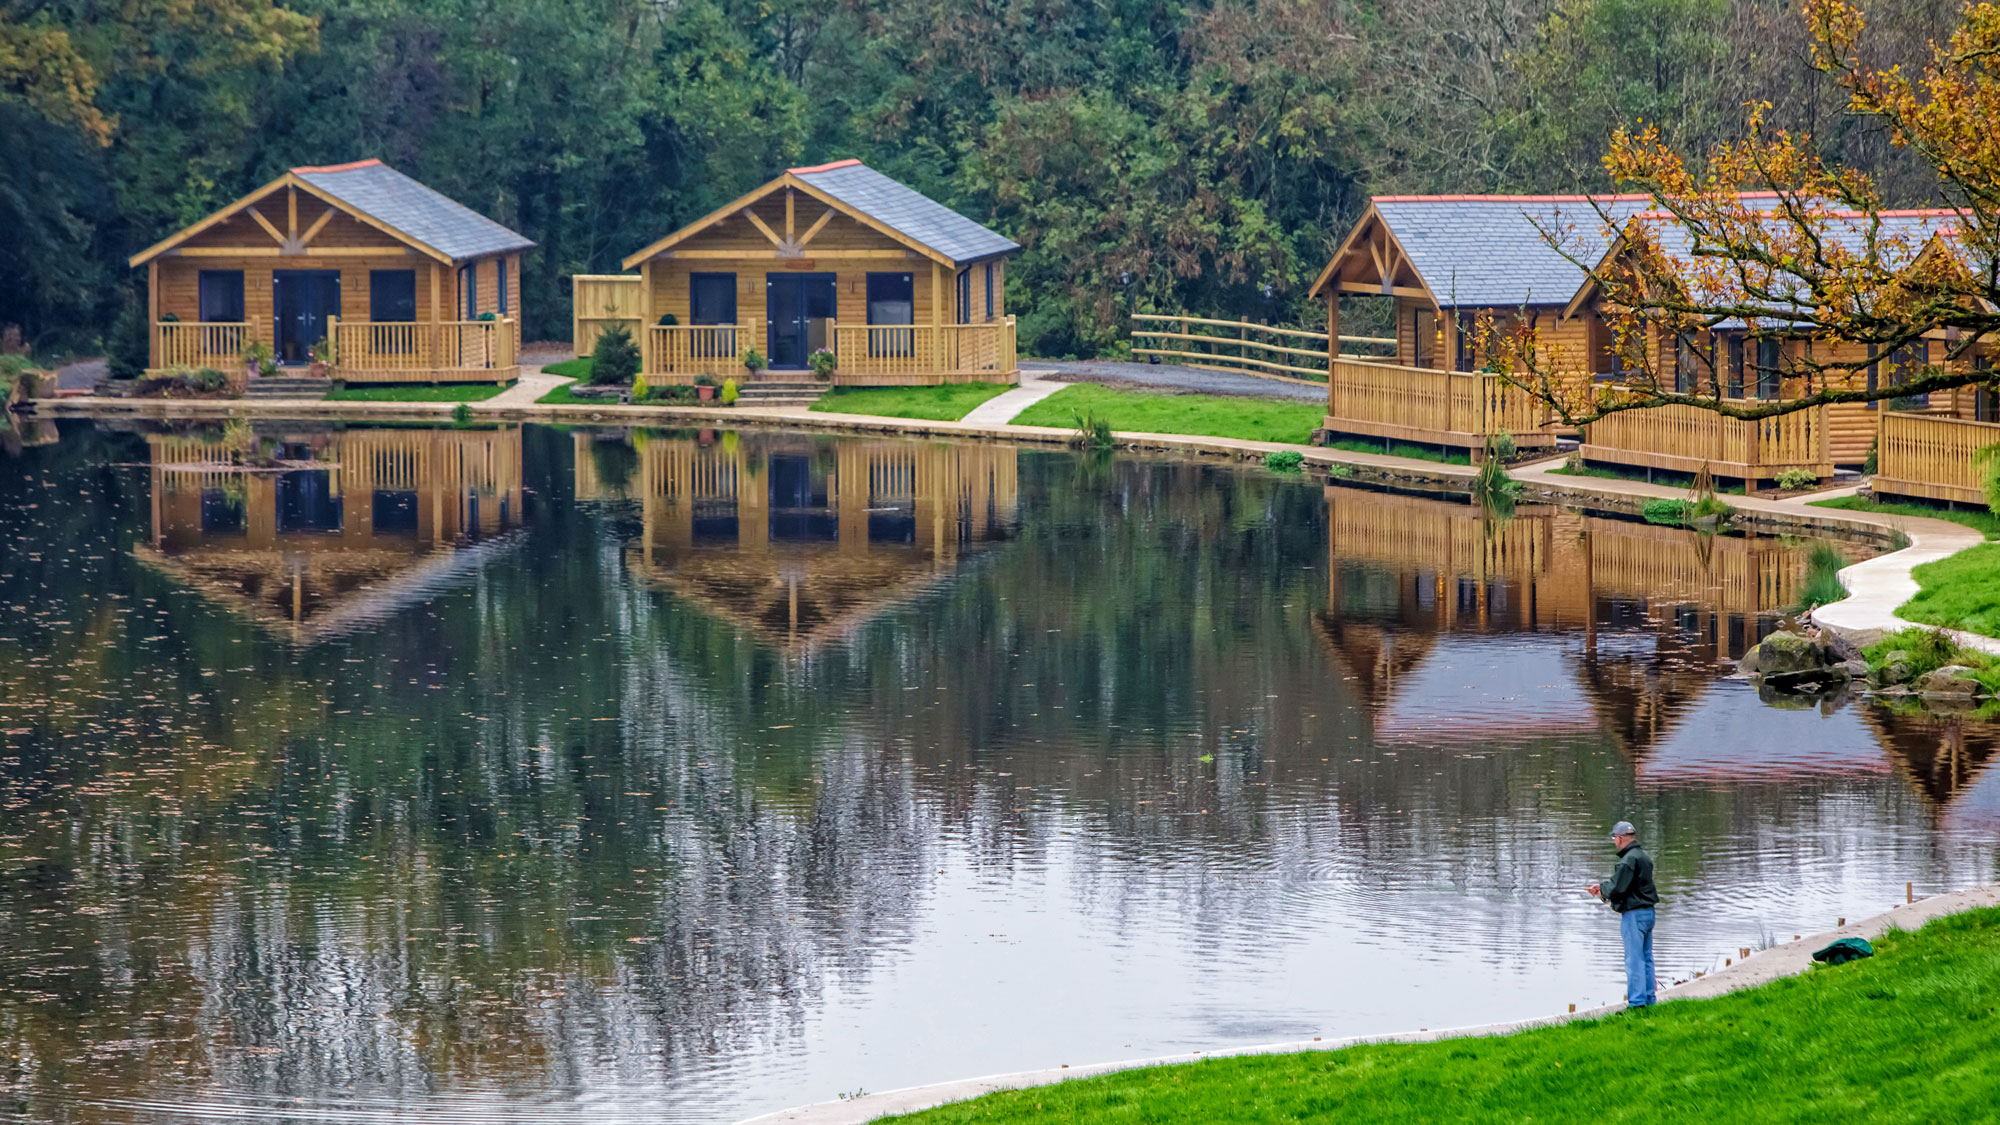 Enjoy An Open Day And Sunday Lunch At Canada Lodge And Lake